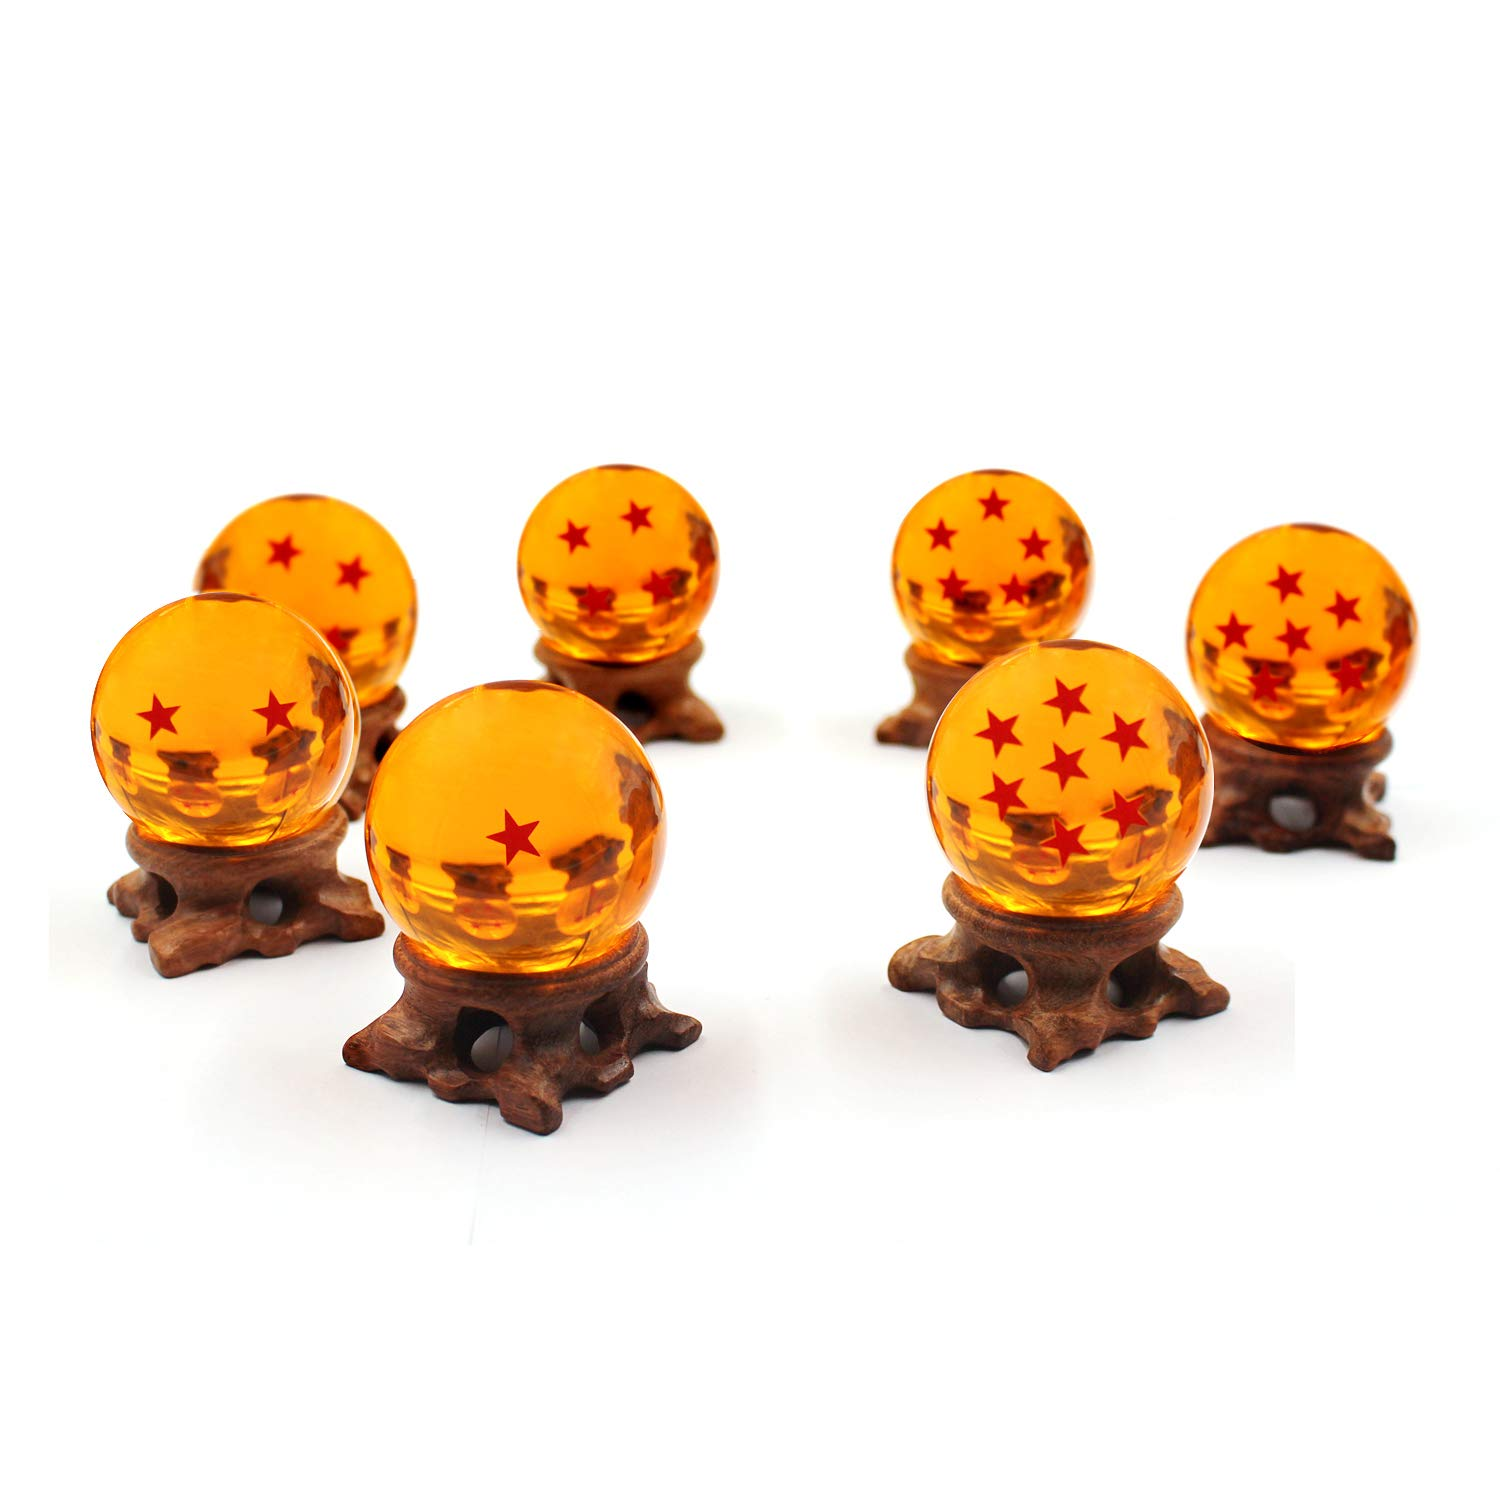 FleurVC 7 pcs Large Star Ball Set with 7pcs Pure Hand-Made Wooden Ball Holders -Red Stars Amber Color Transparent Play Balls(2.3inch) by FleurVC (Image #2)